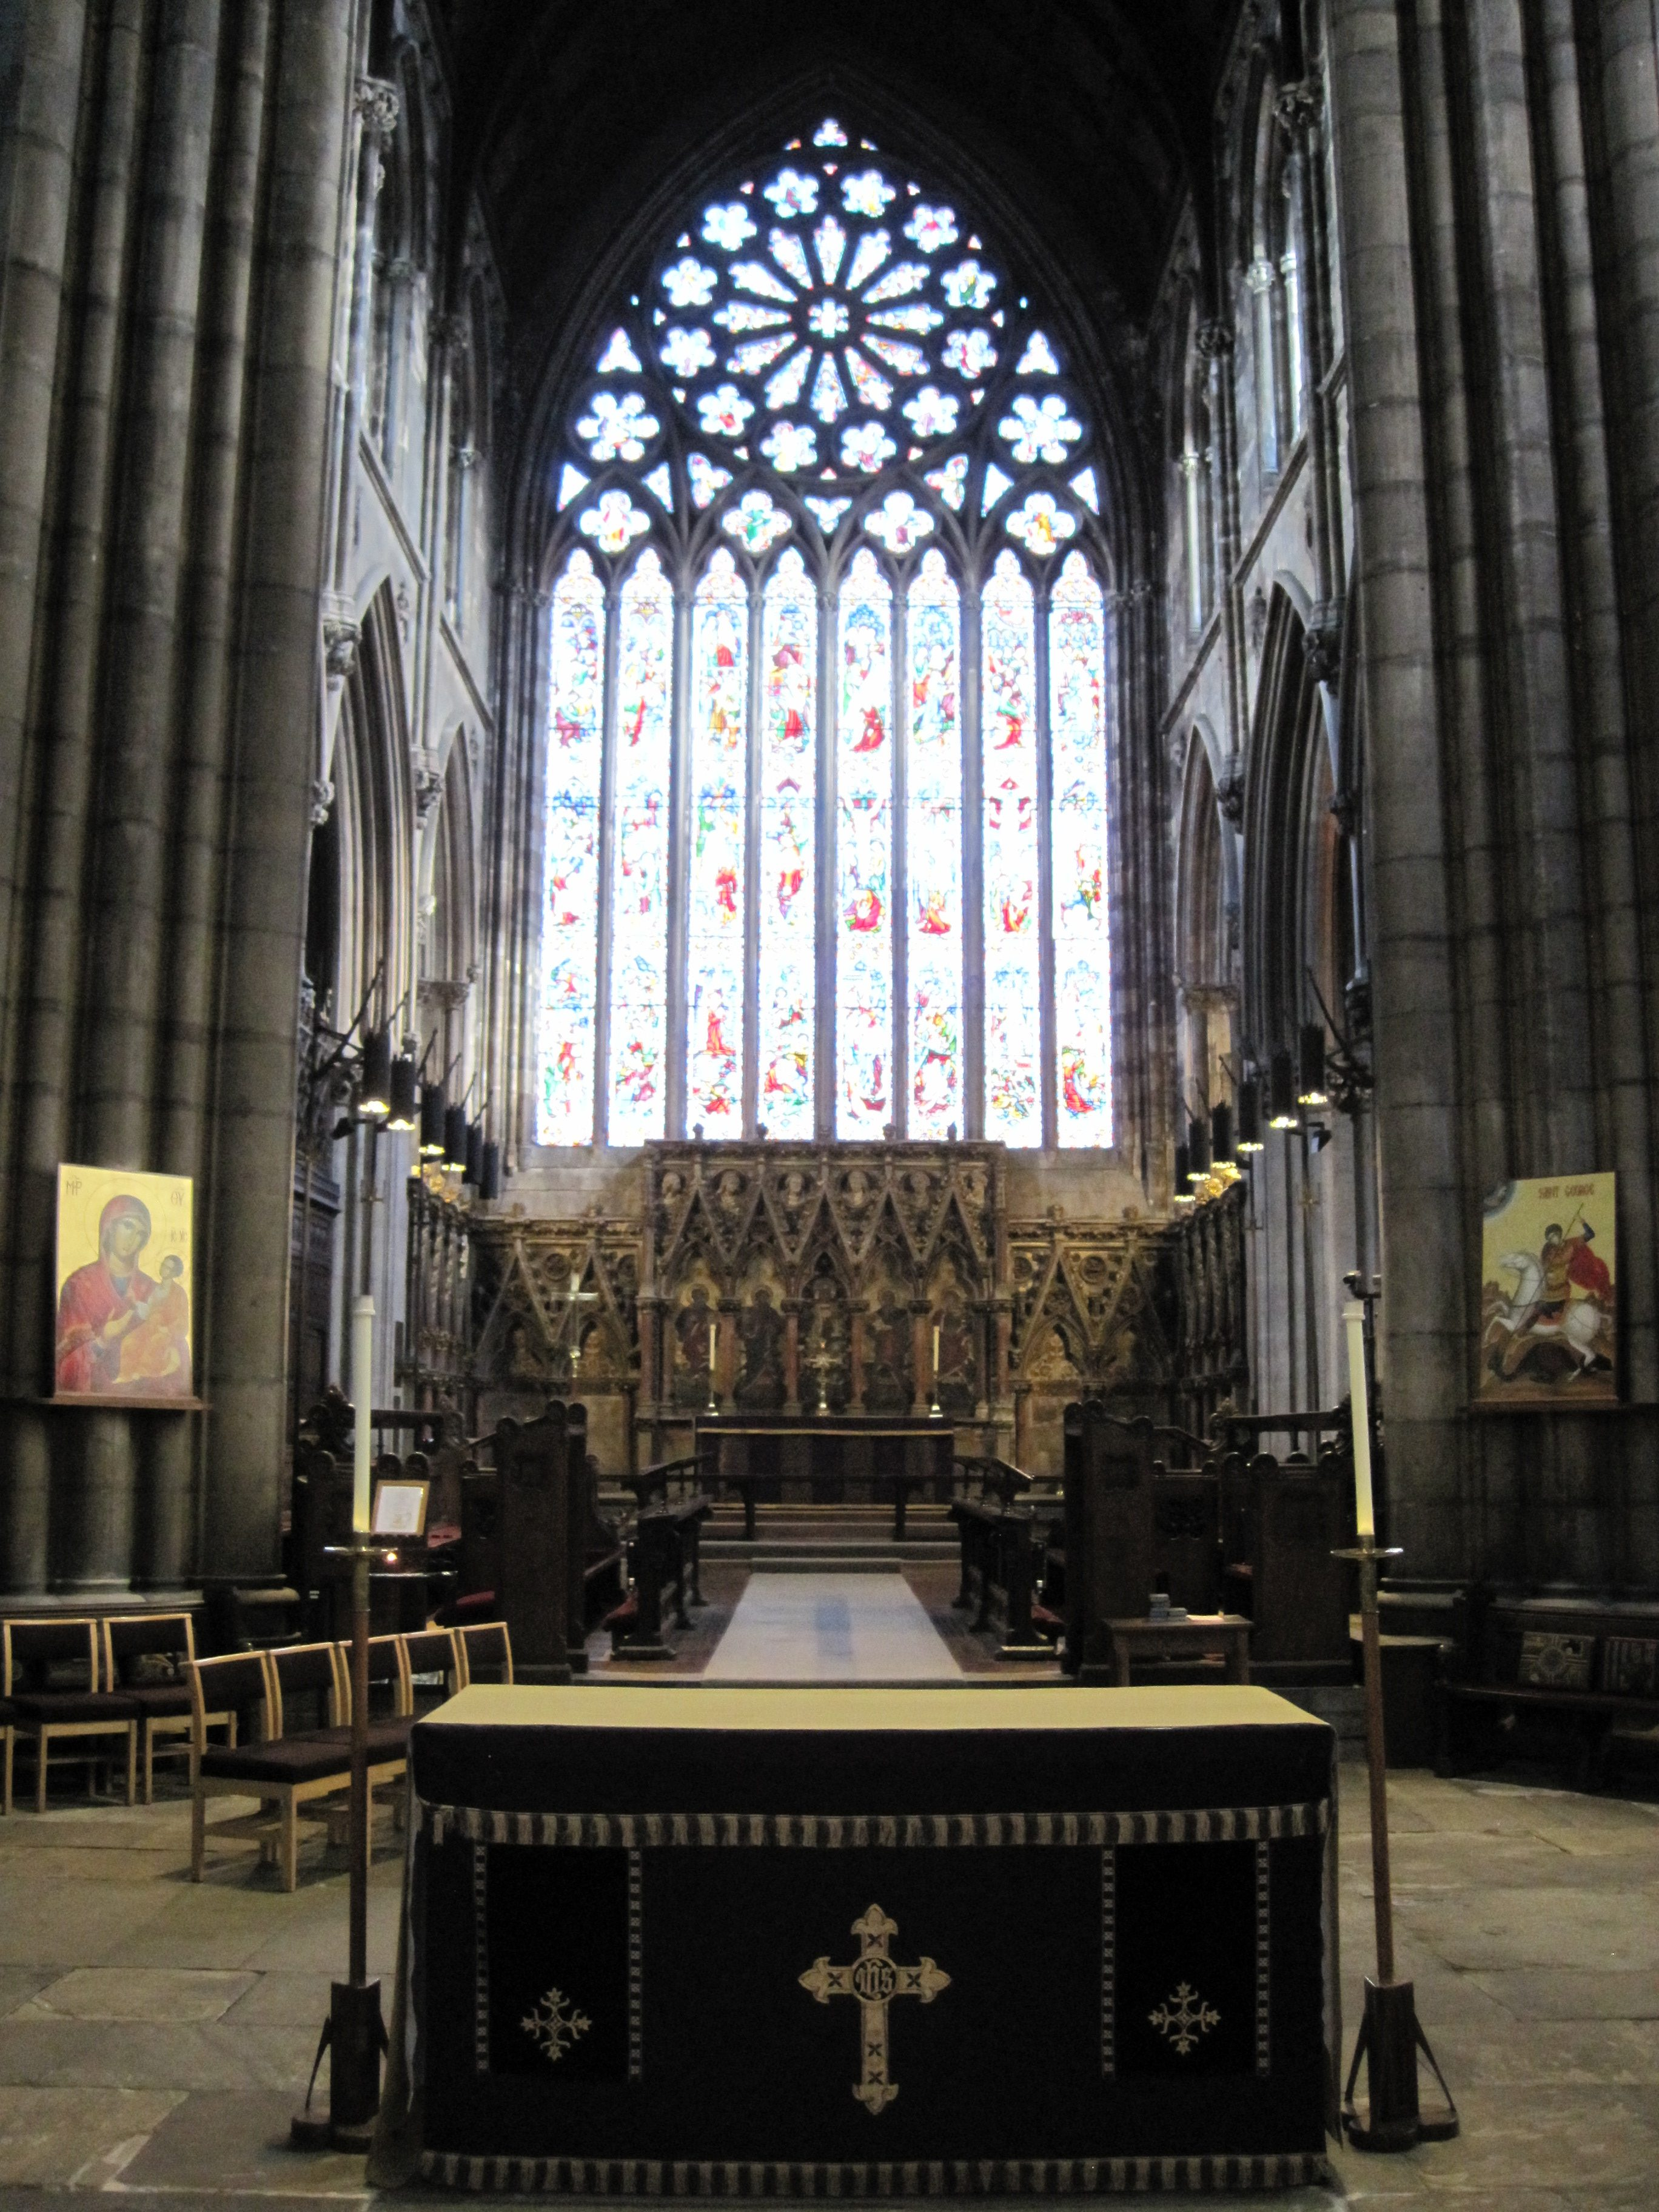 The High Alter and Great East Window